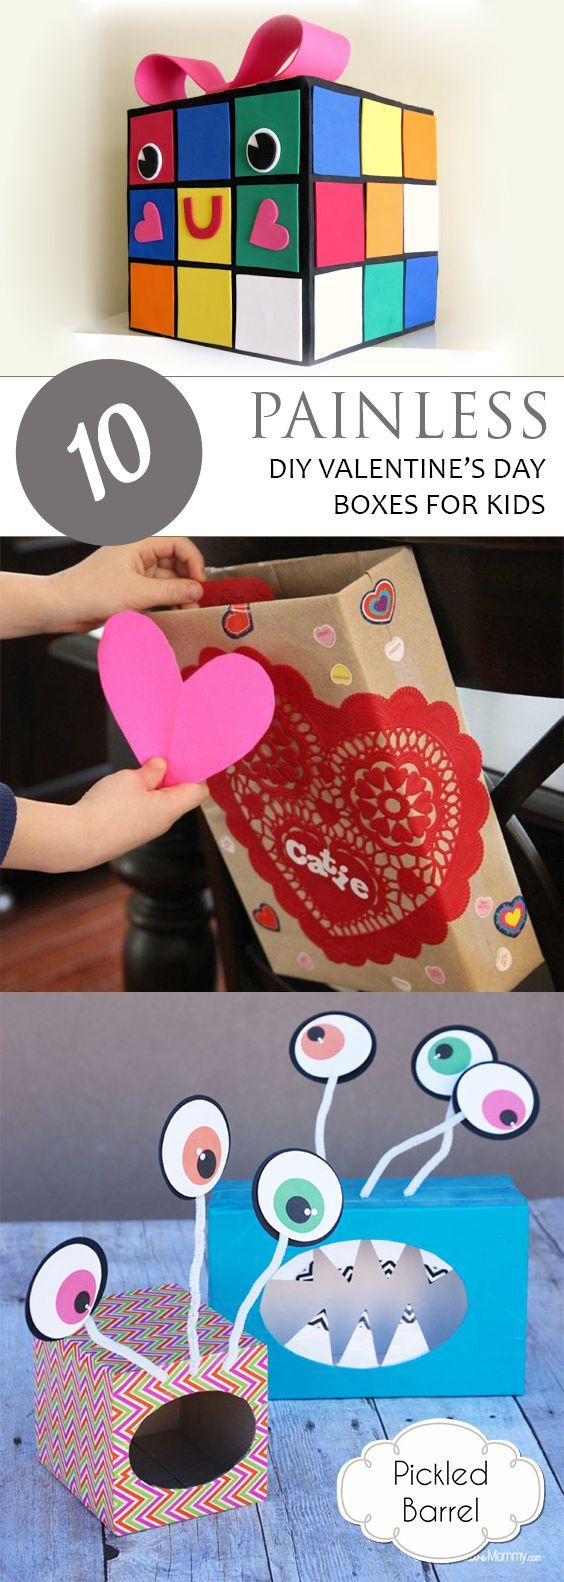 10 Painless DIY Valentines Day Boxes for Kids